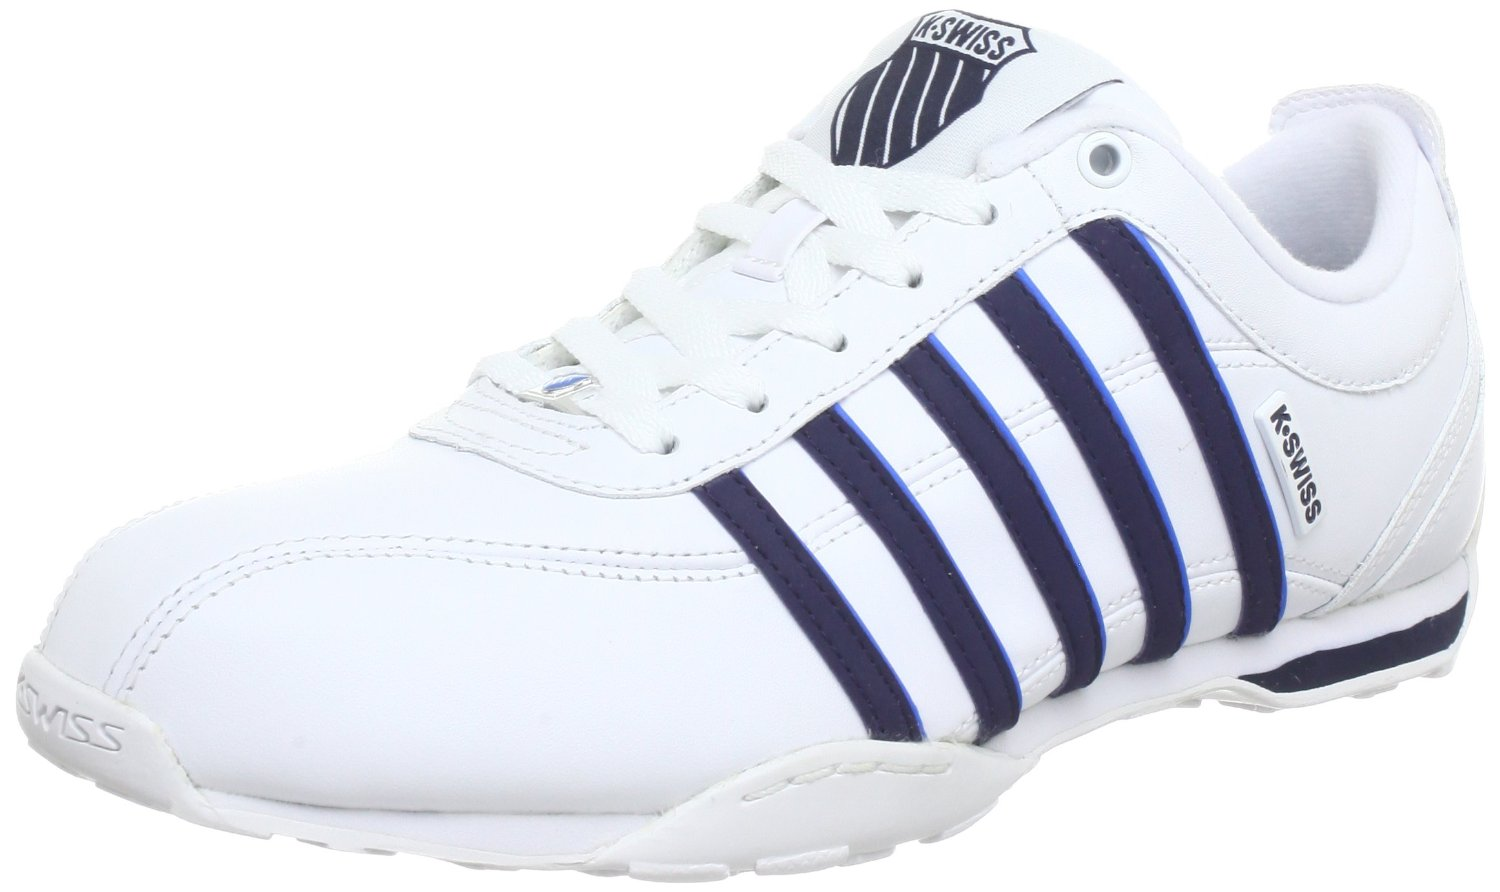 k swiss arvee 1 5 white navy blue new mens leather shoes. Black Bedroom Furniture Sets. Home Design Ideas